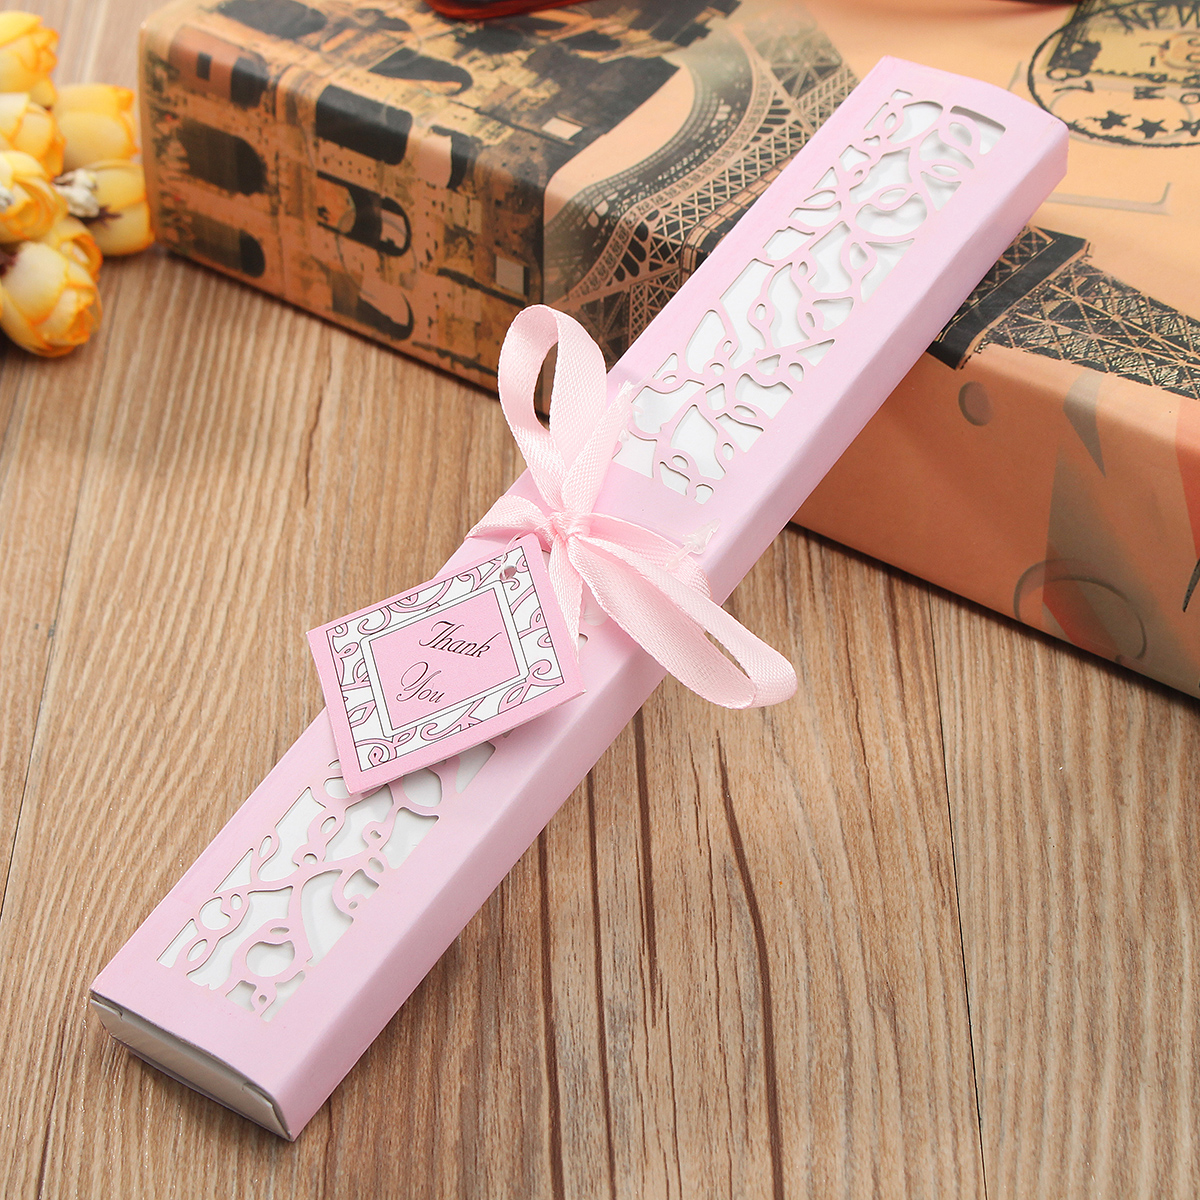 Wedding Gift Box Singapore : ... Bracelet Watch Jewelry Gift Box Case WeddingPackage Decor pink - Intl